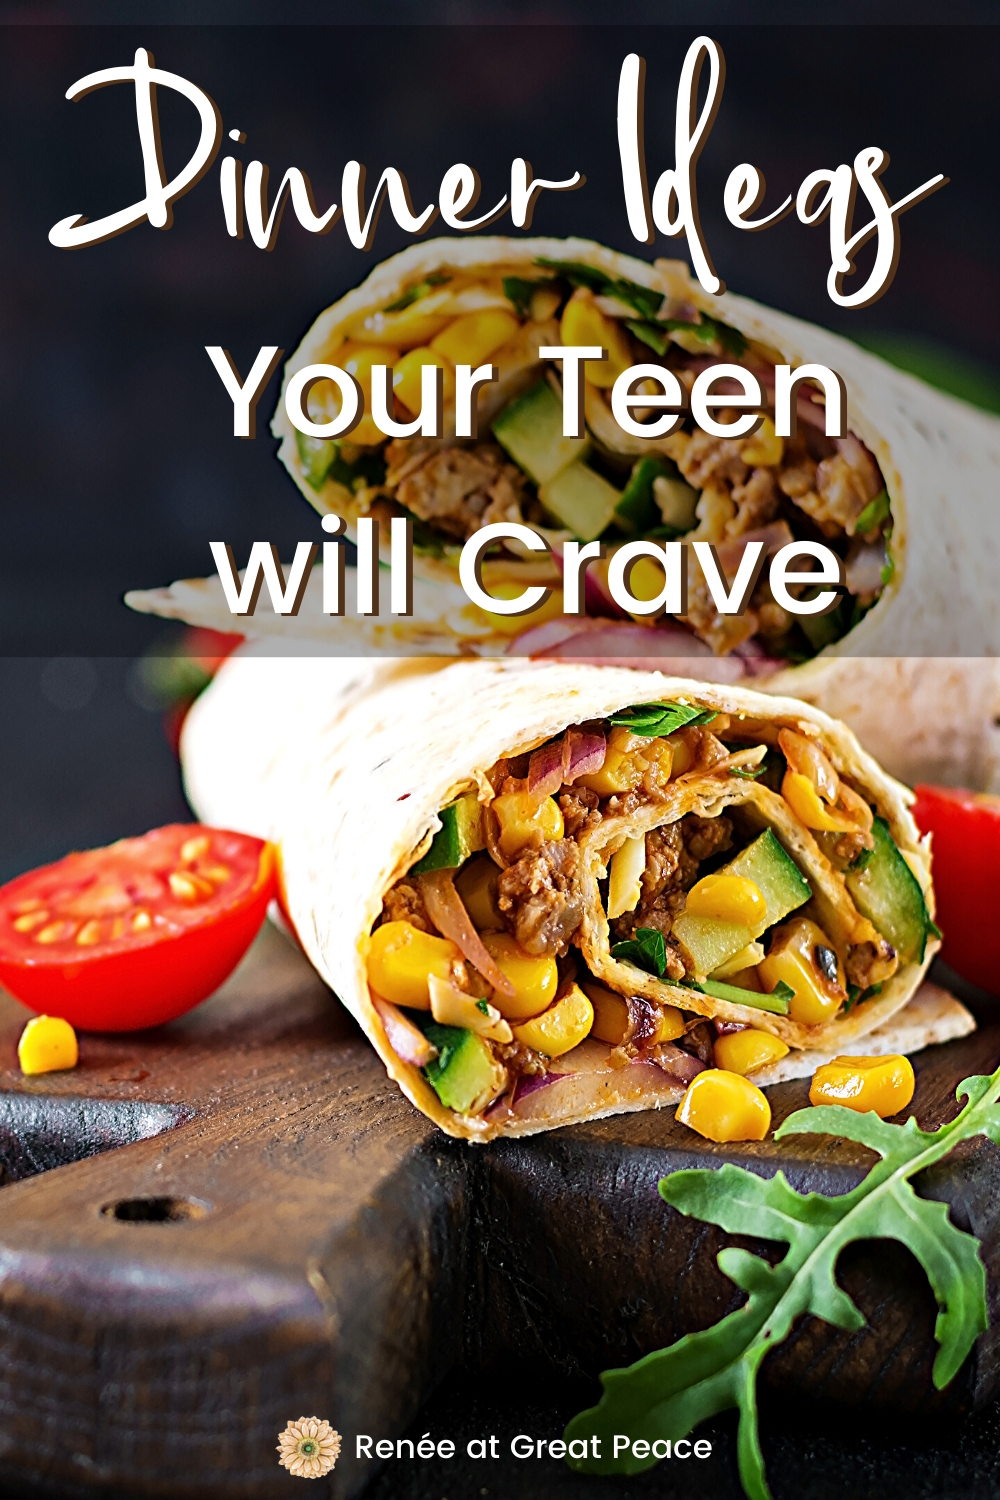 Dinner Ideas your Teen will Crave | Renee at Great Peace #dinnerideas #teens #foodforteens #familydinnerideas #mealplanning